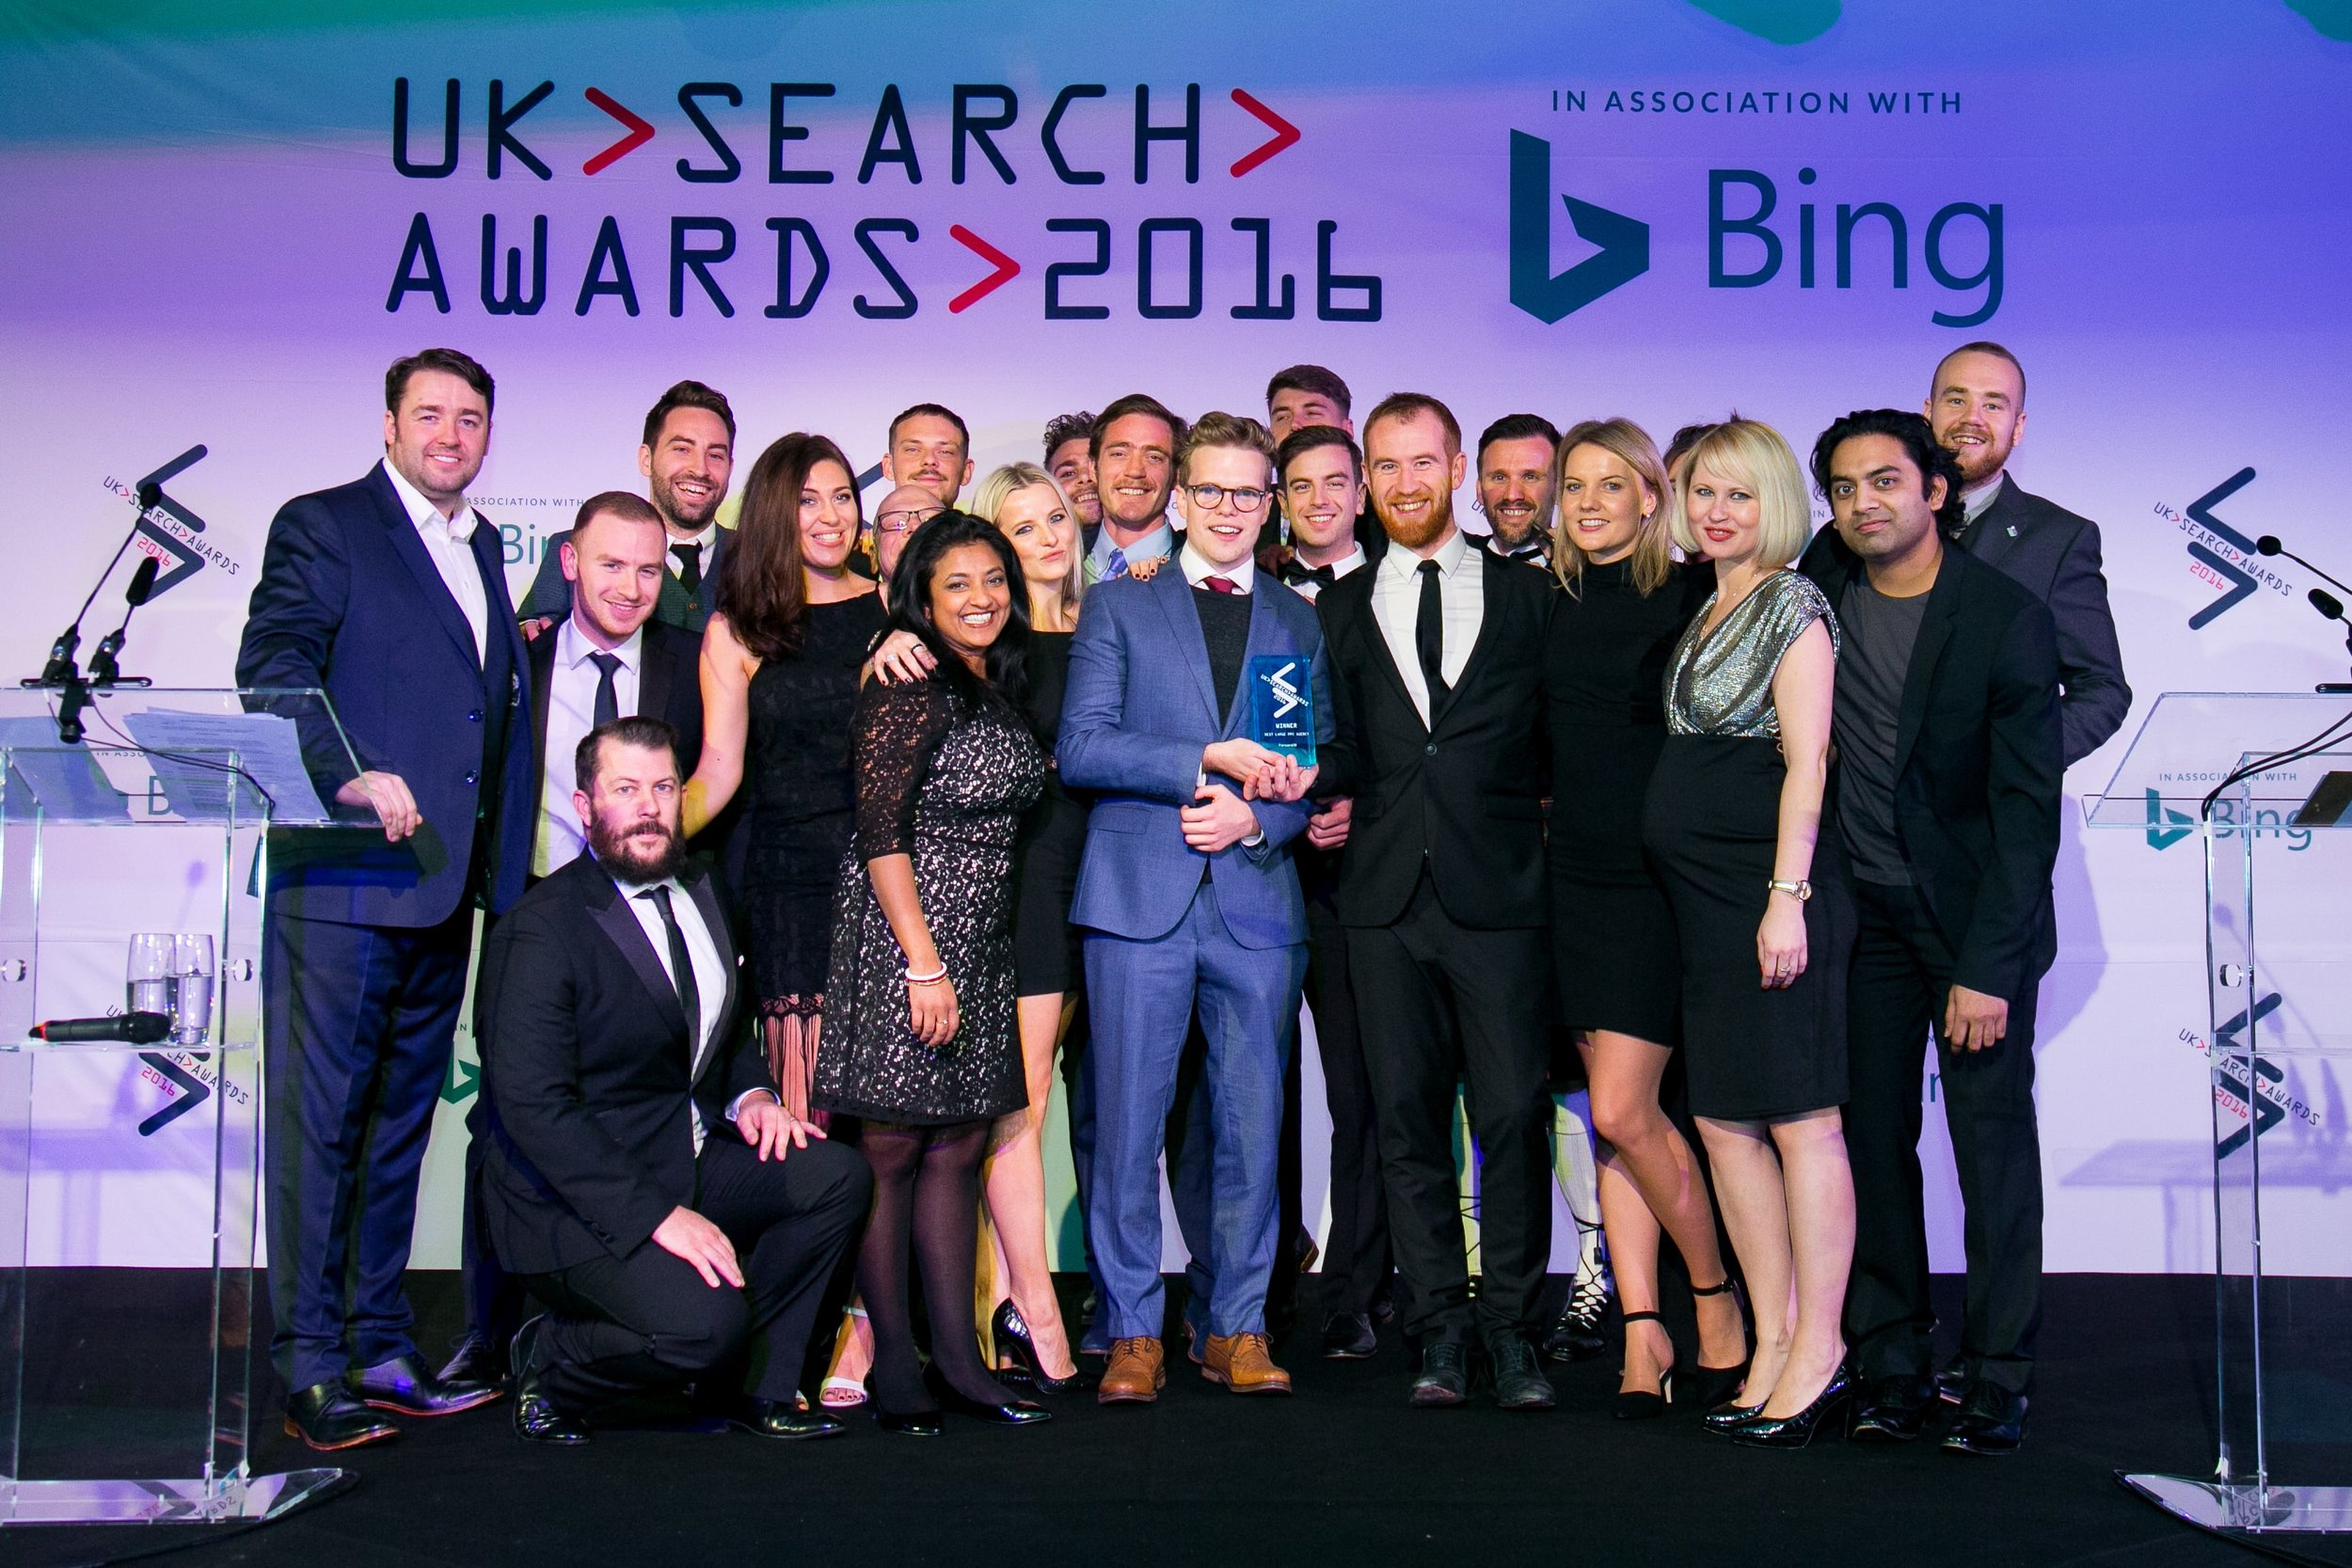 UK Search Awards9.jpg-min.jpg